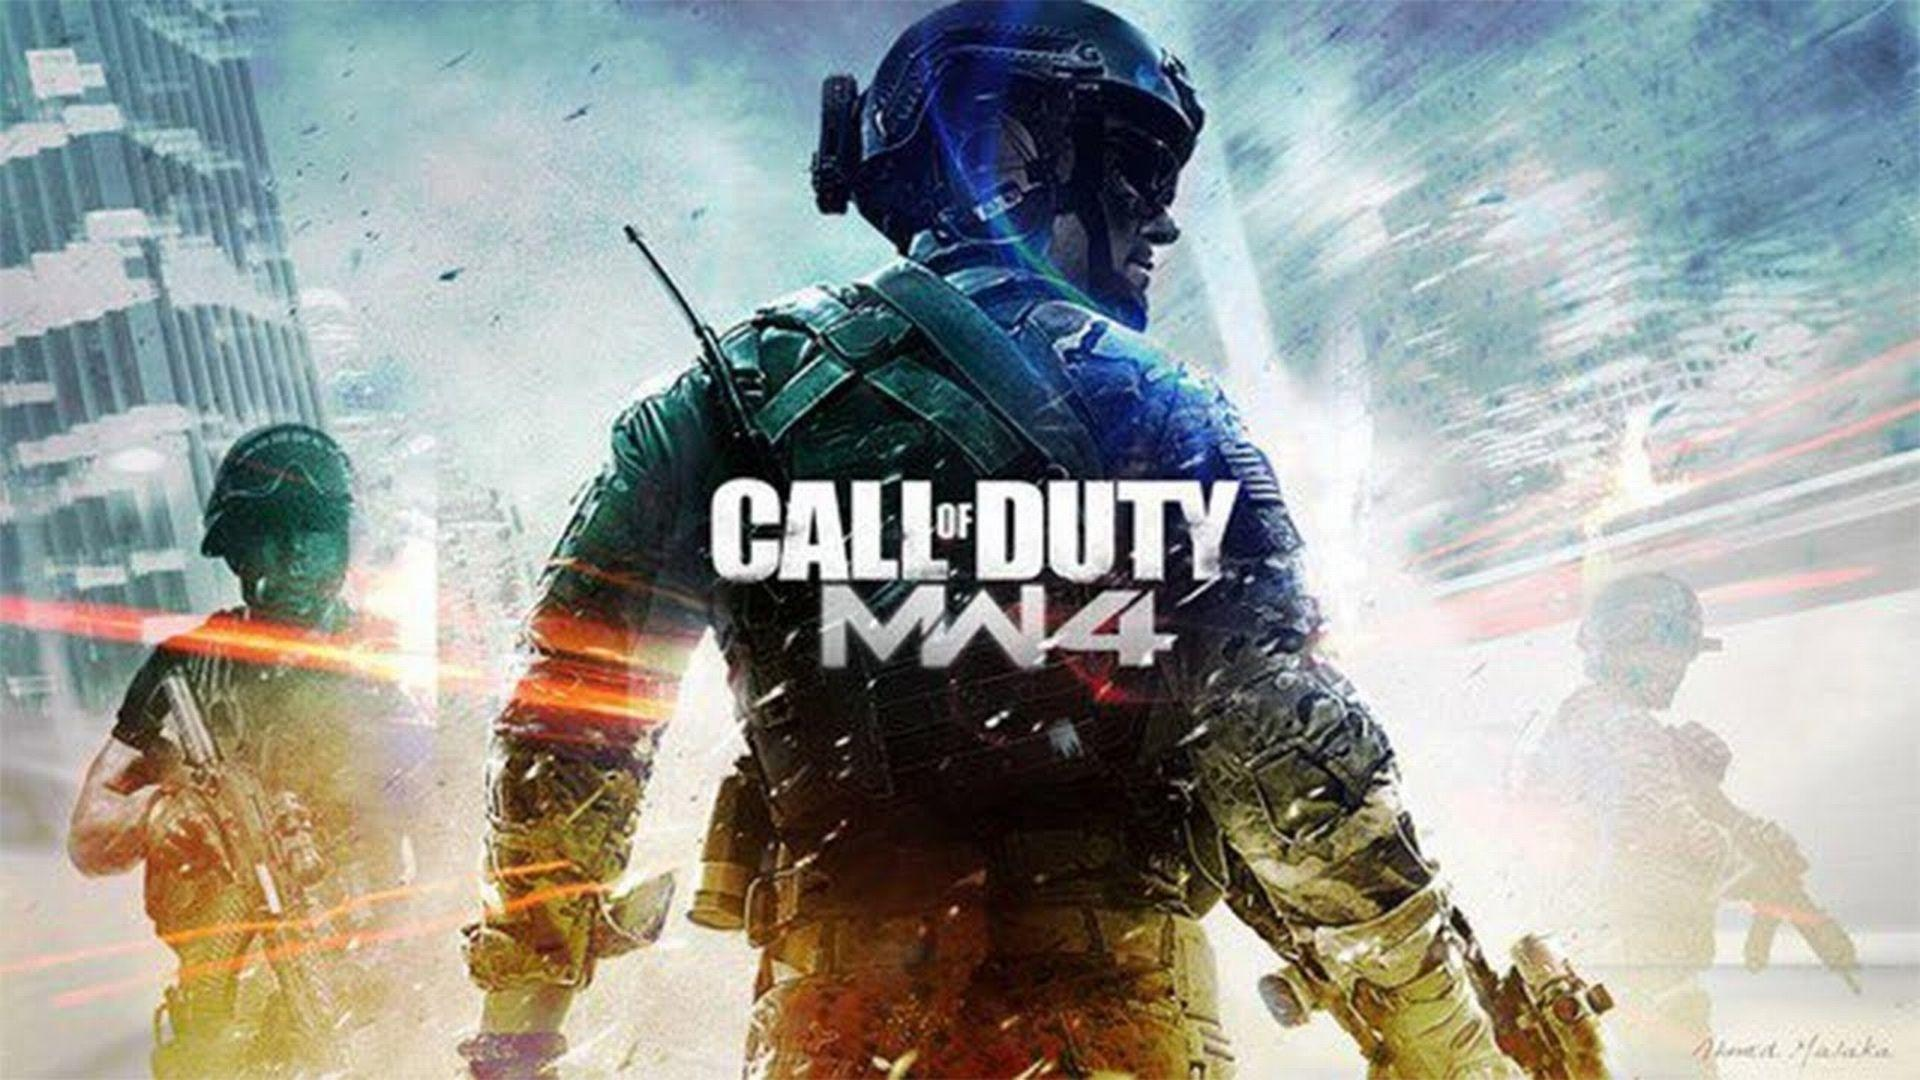 Call Of Duty Black Ops 4 Wallpapers: Call Of Duty: Black Ops 4 Wallpapers